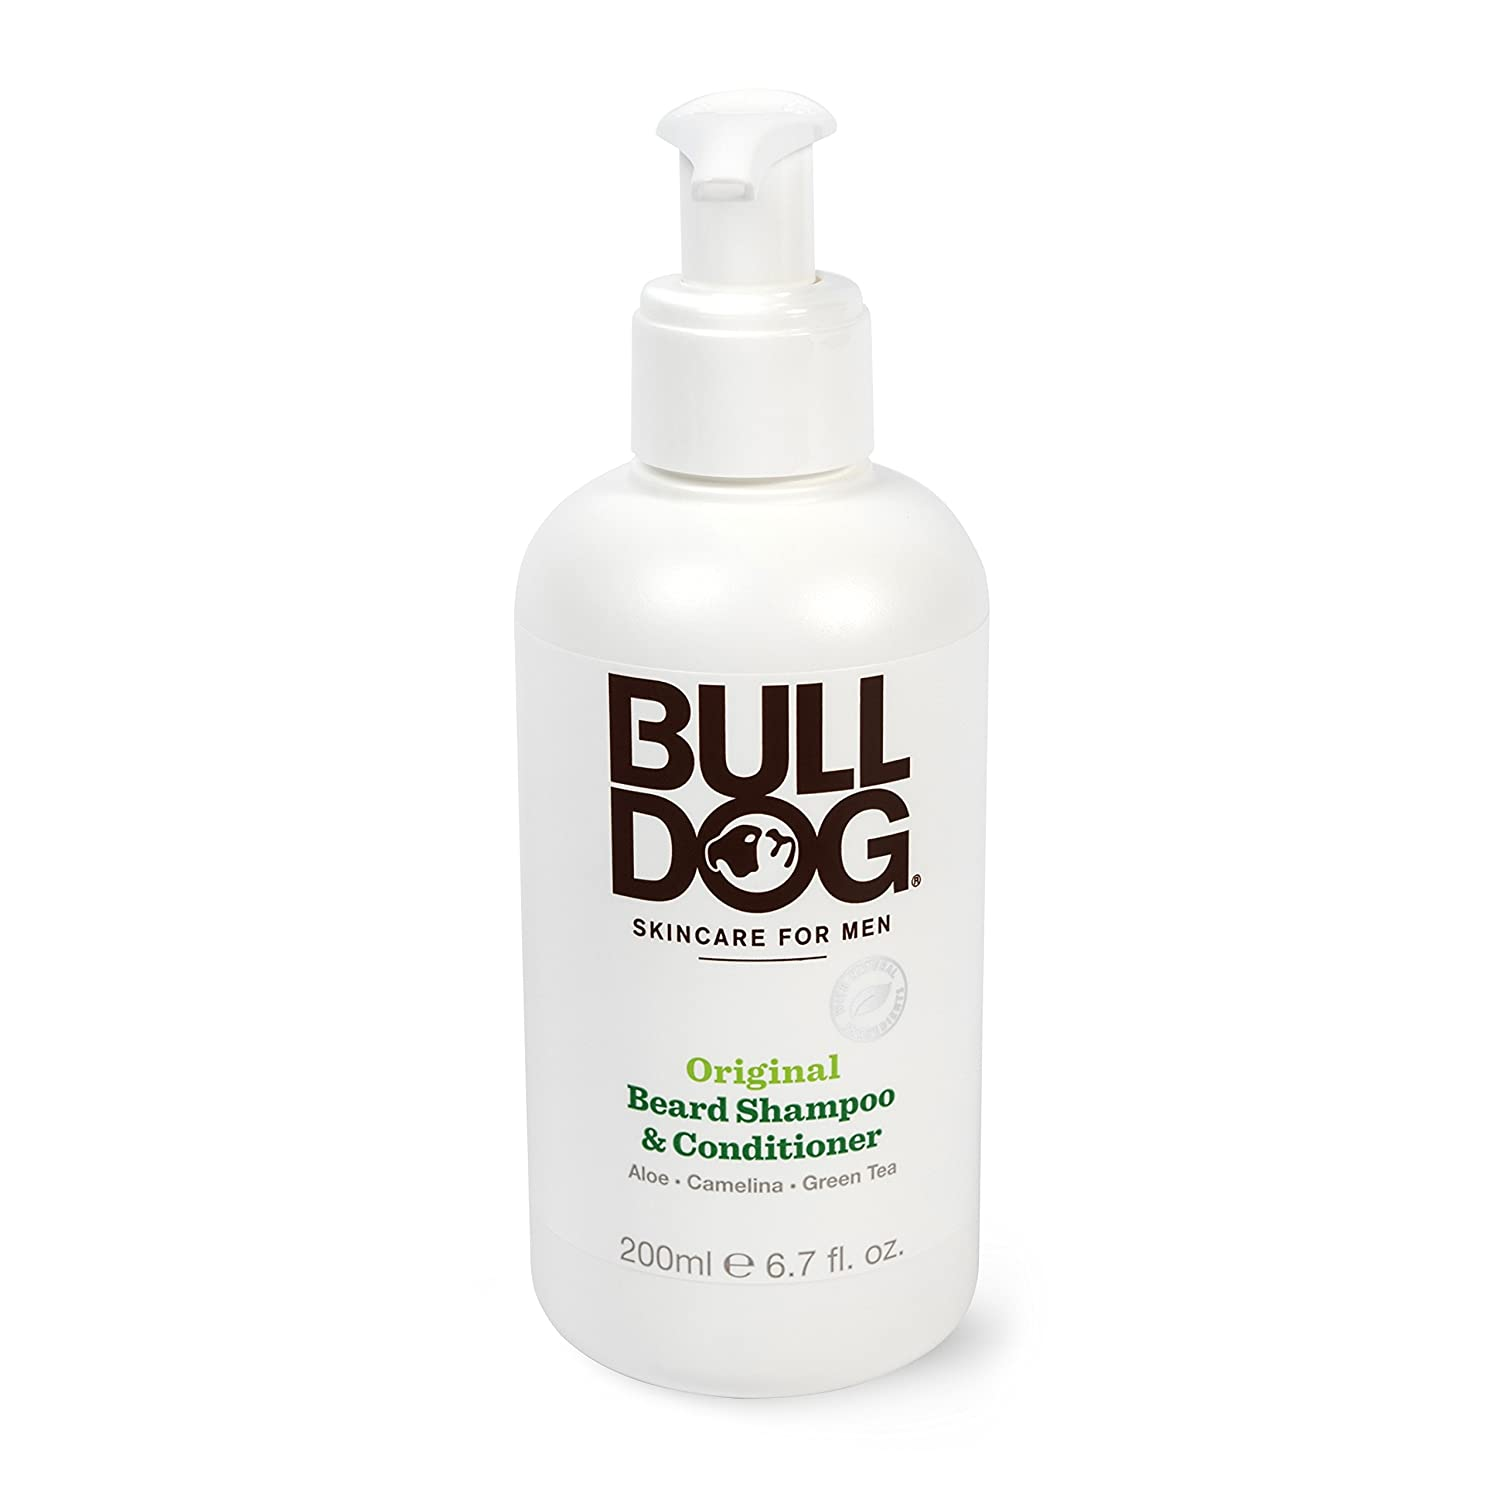 Bulldog Skincare and Grooming For Men Original Beard Shampoo and Conditioner, 6.7 Ounce Energizer Personal Care